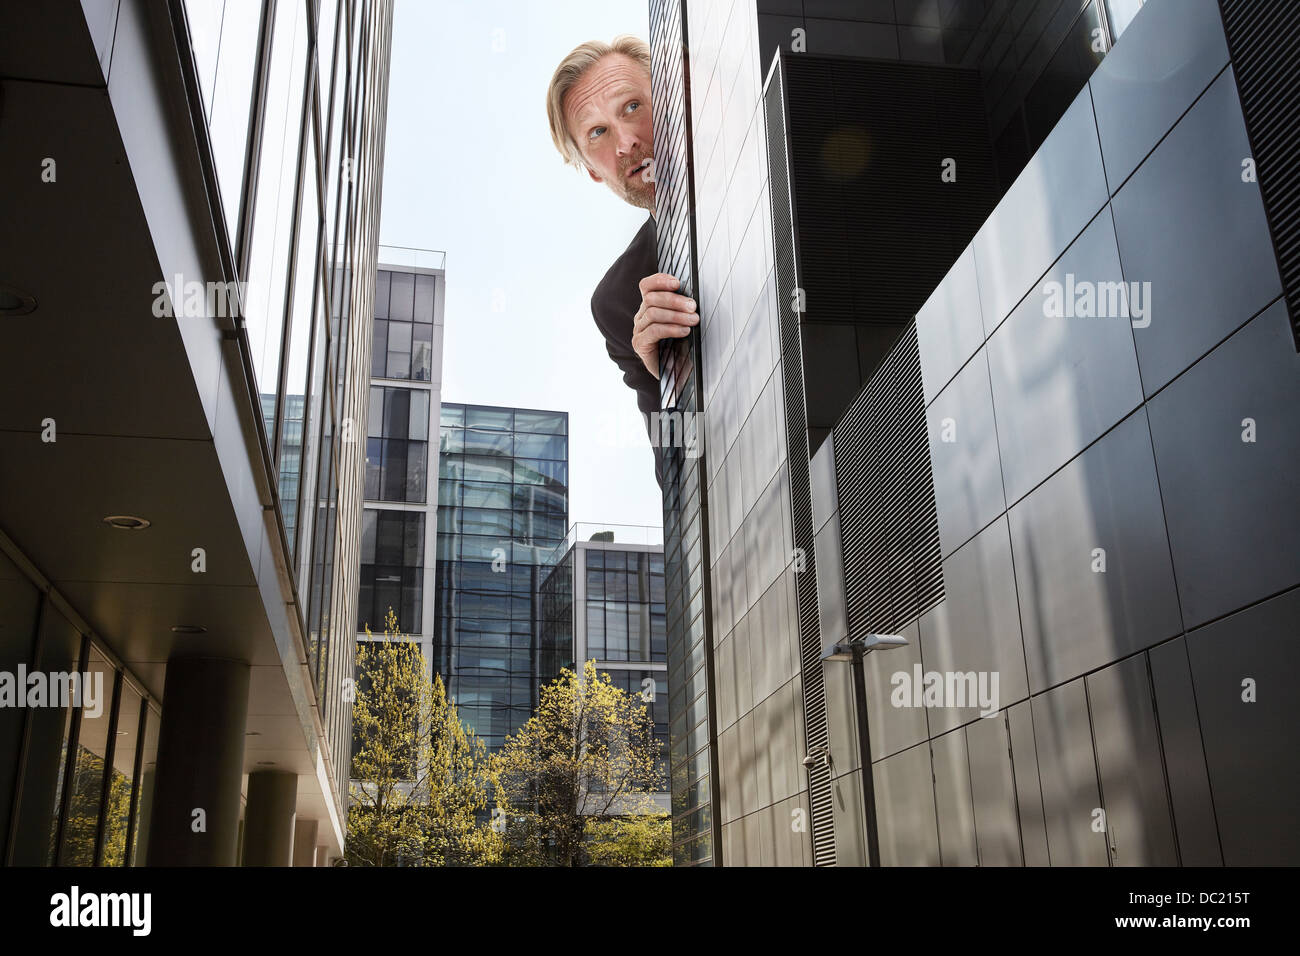 Oversized businessman peering from behind skyscrapers, low angle view - Stock Image